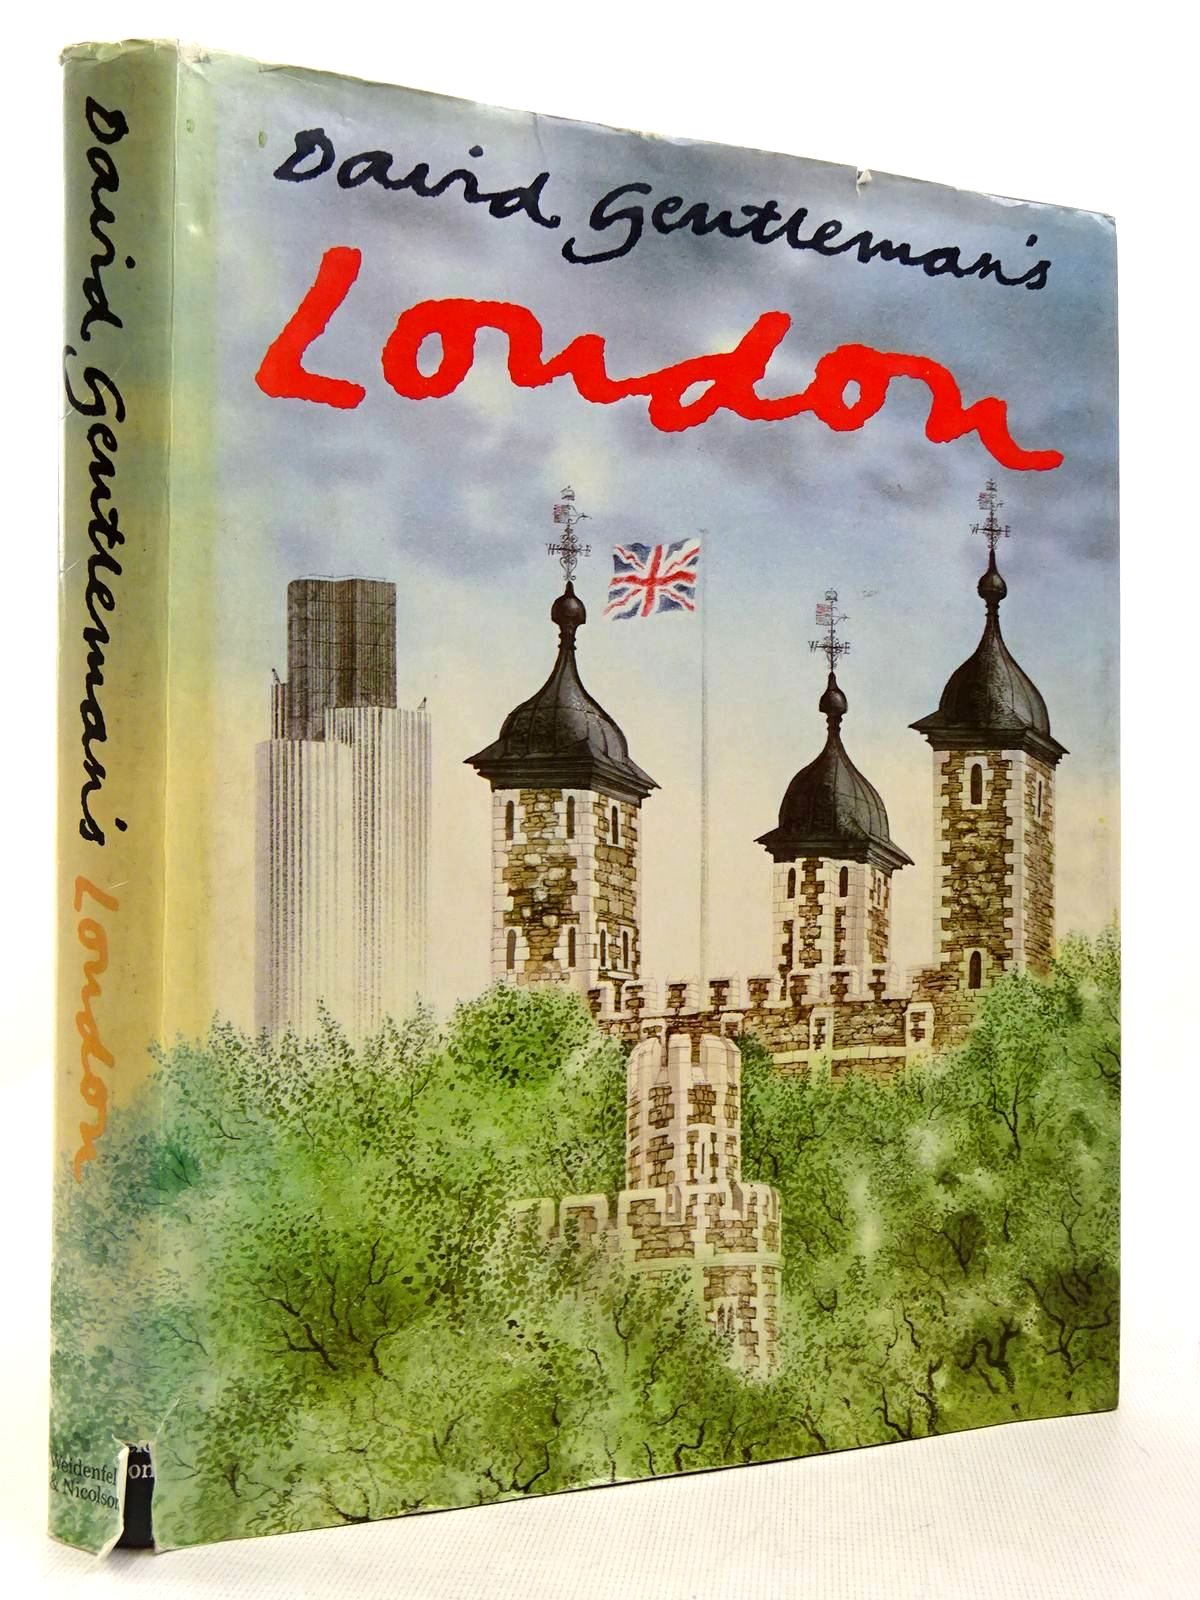 Photo of DAVID GENTLEMAN'S LONDON written by Gentleman, David illustrated by Gentleman, David published by Weidenfeld and Nicolson (STOCK CODE: 2129321)  for sale by Stella & Rose's Books